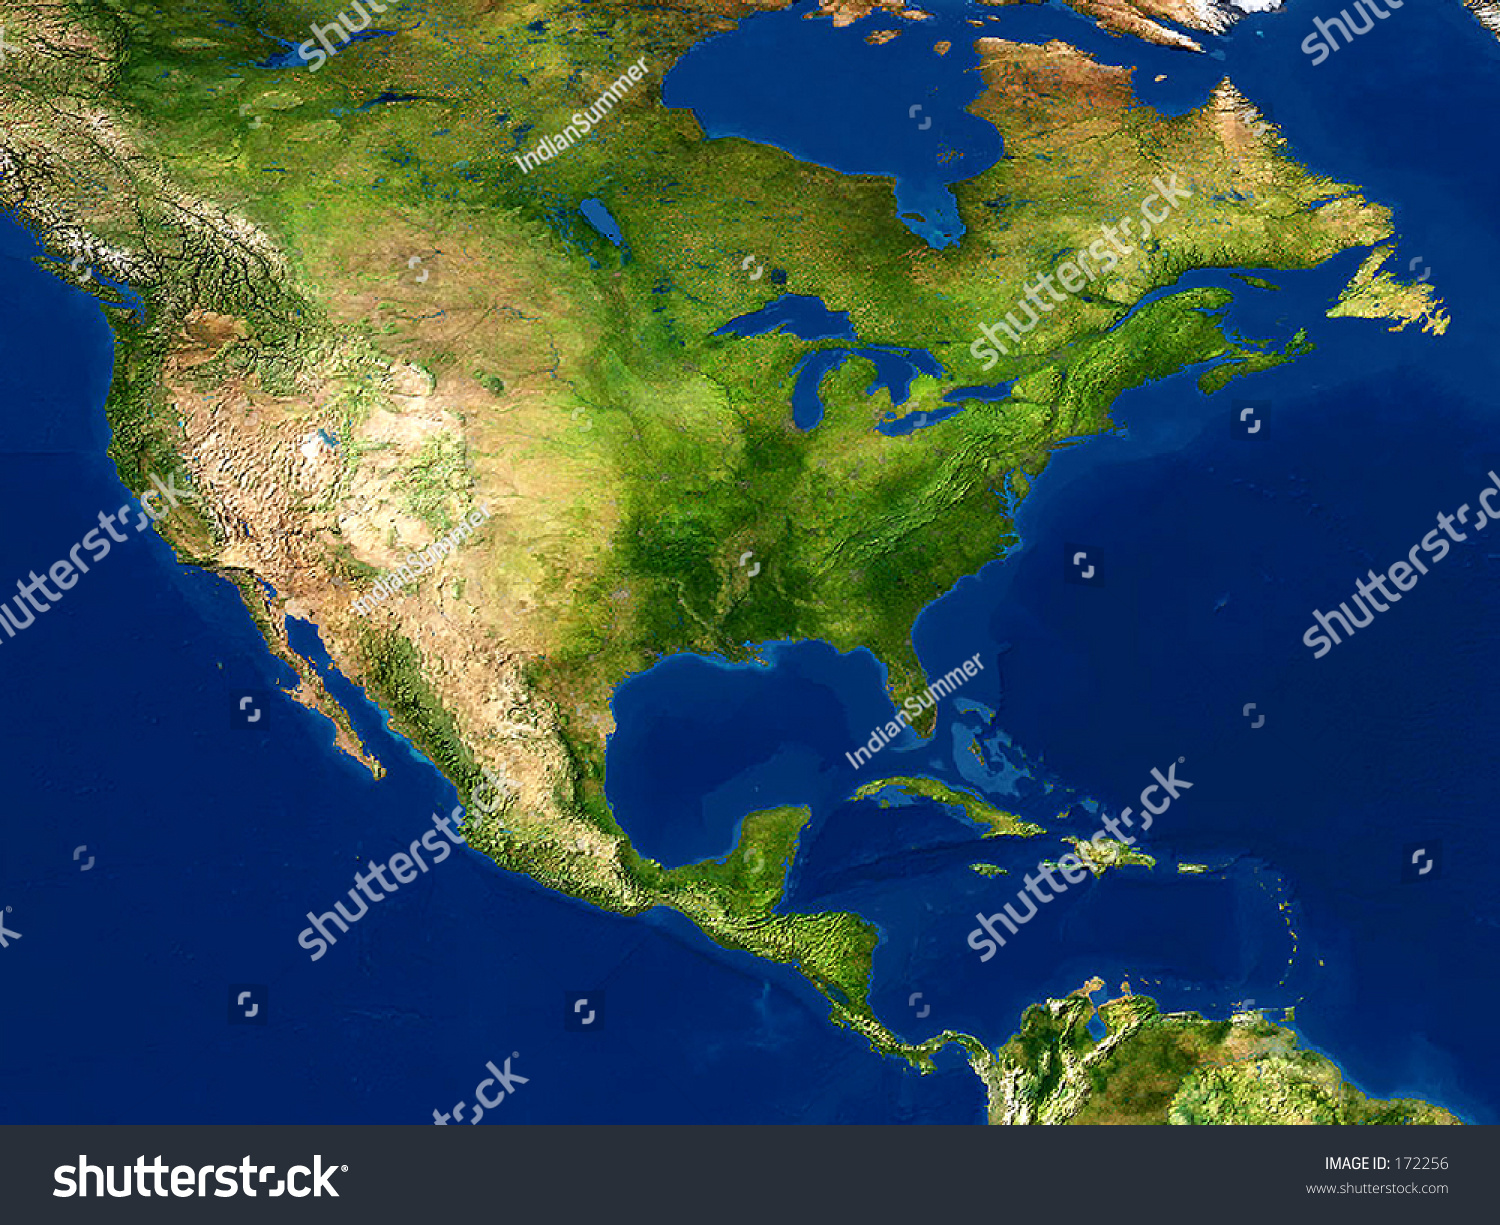 Real looking earth map north america stock photo royalty free real looking earth map north america in the center globe is accurate and right gumiabroncs Images